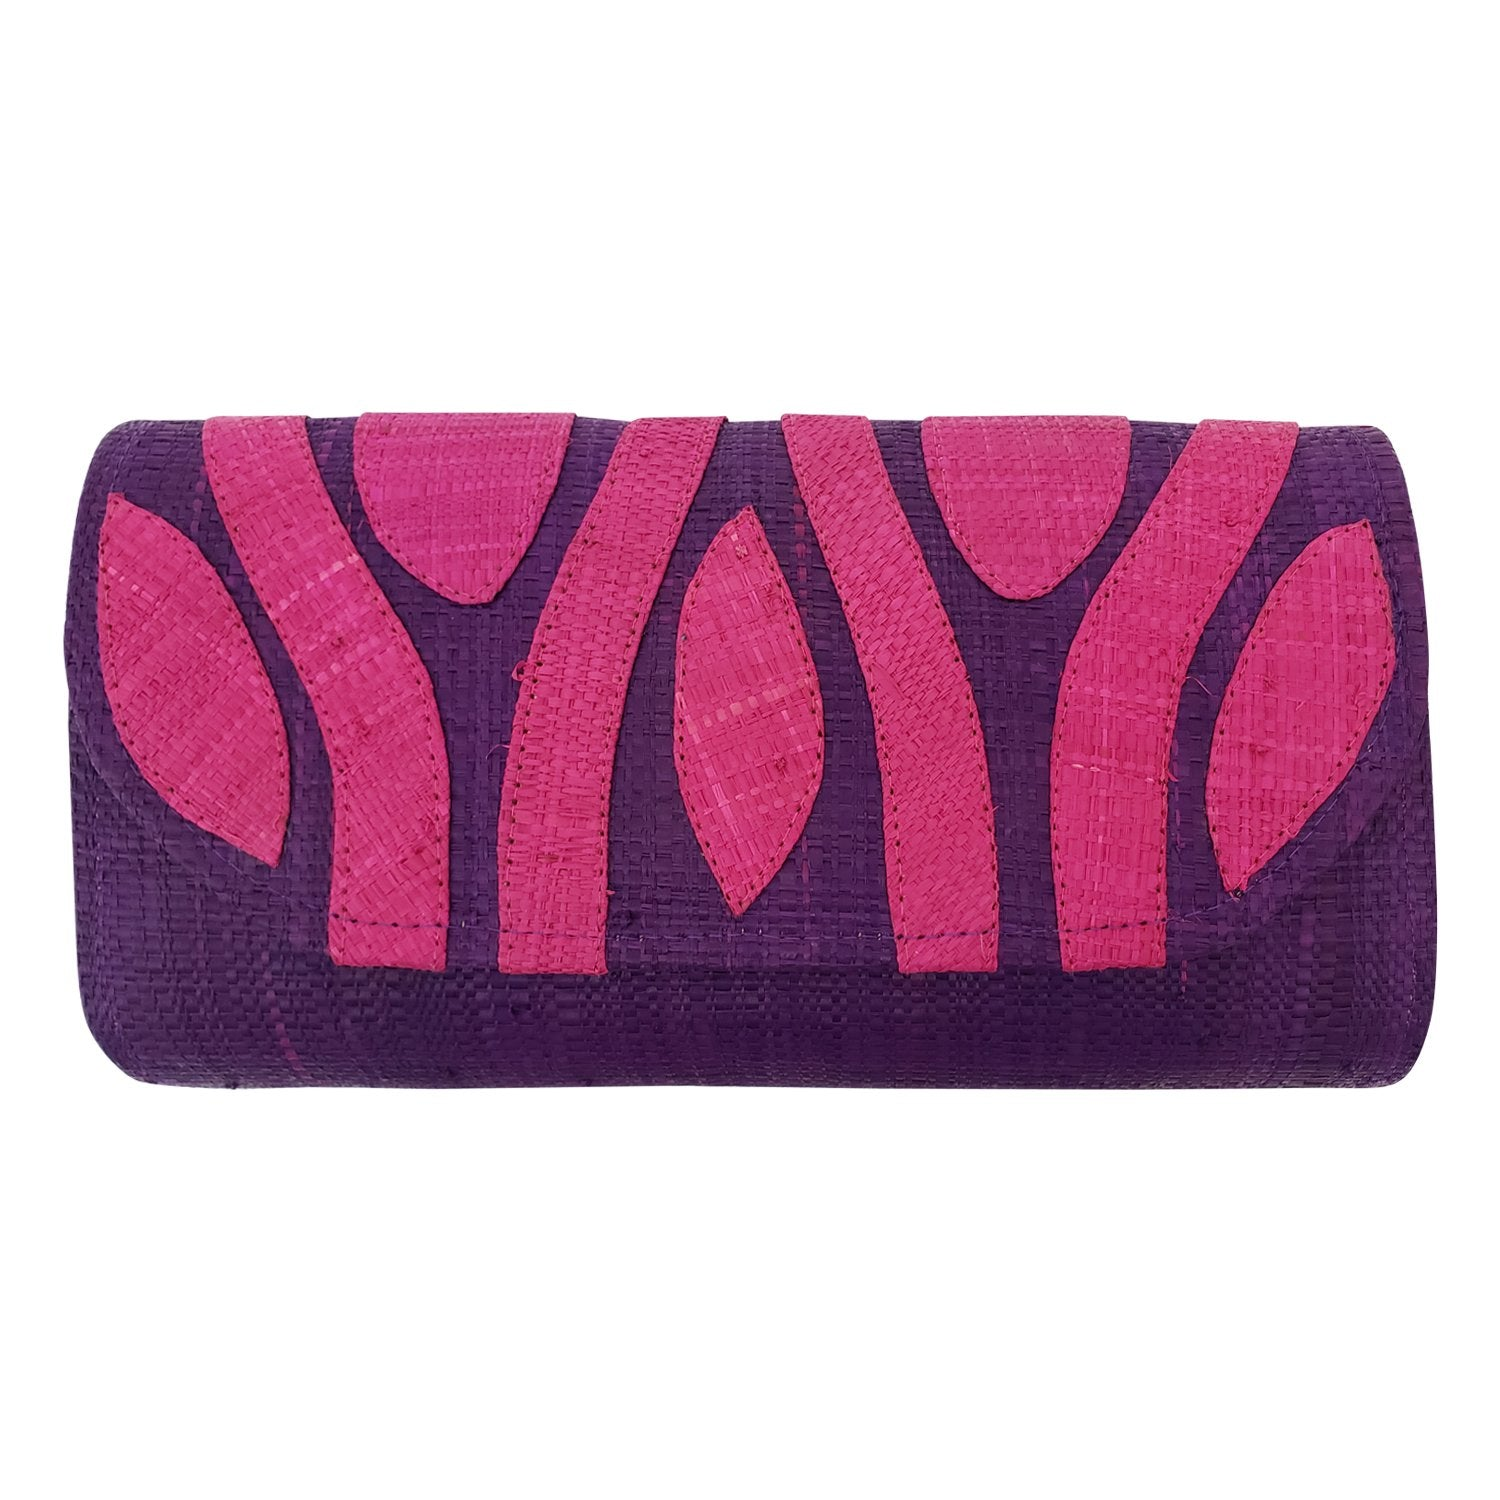 Authentic Handwoven Purple Madagascar Raffia Clutch with Fuchsia Accents